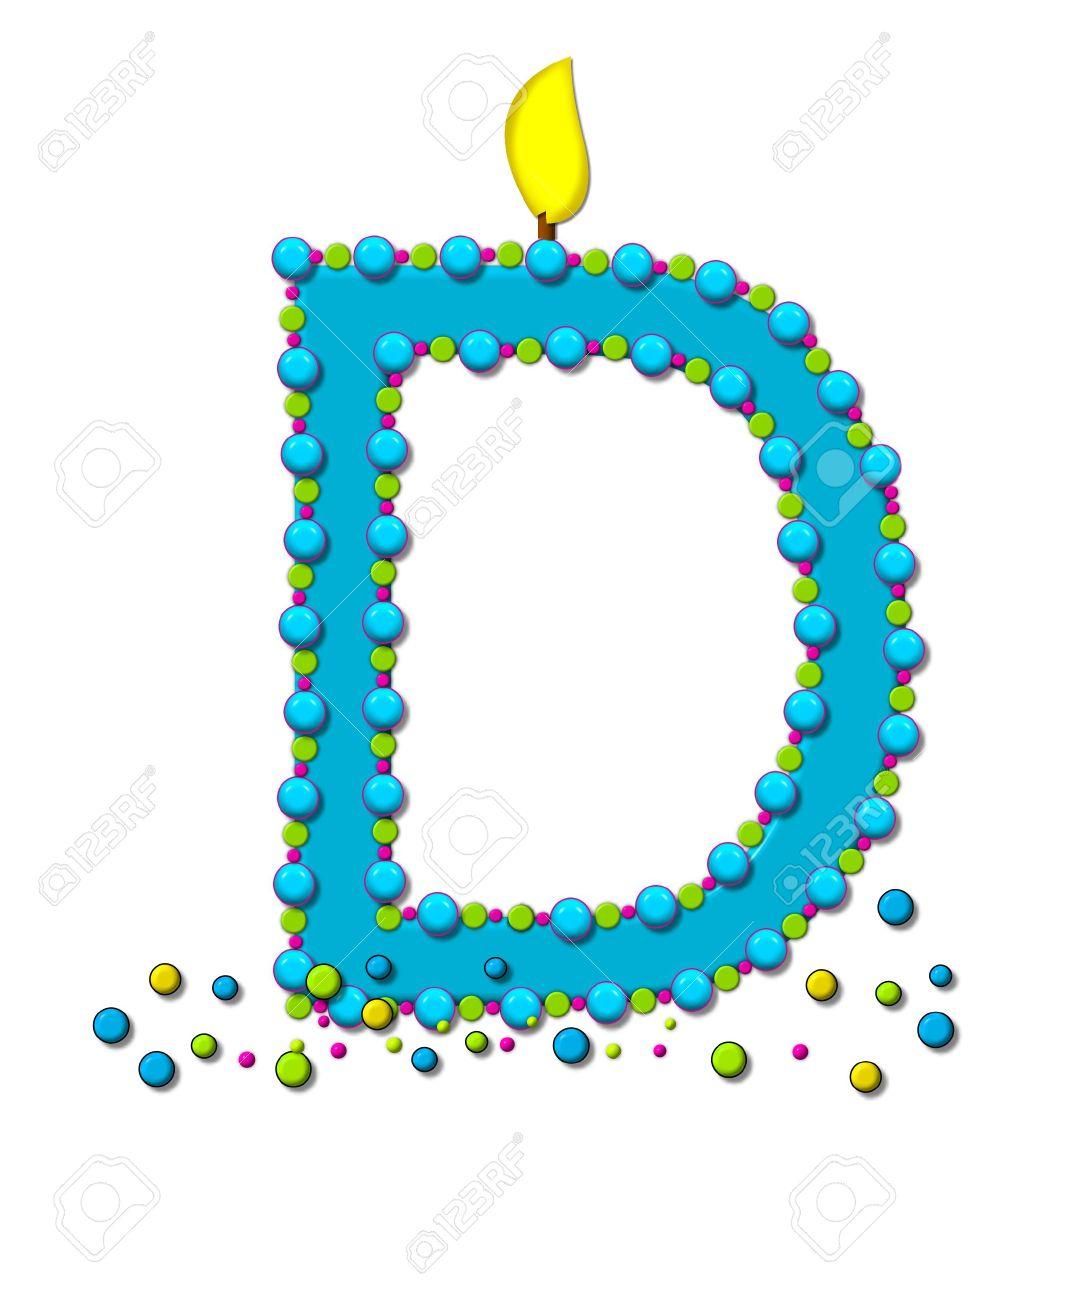 The letter d in the alphabet set birthday cake candle is aqua stock photo the letter d in the alphabet set birthday cake candle is aqua and outlined in fun colored sprinkles flame burns from top of letter thecheapjerseys Choice Image